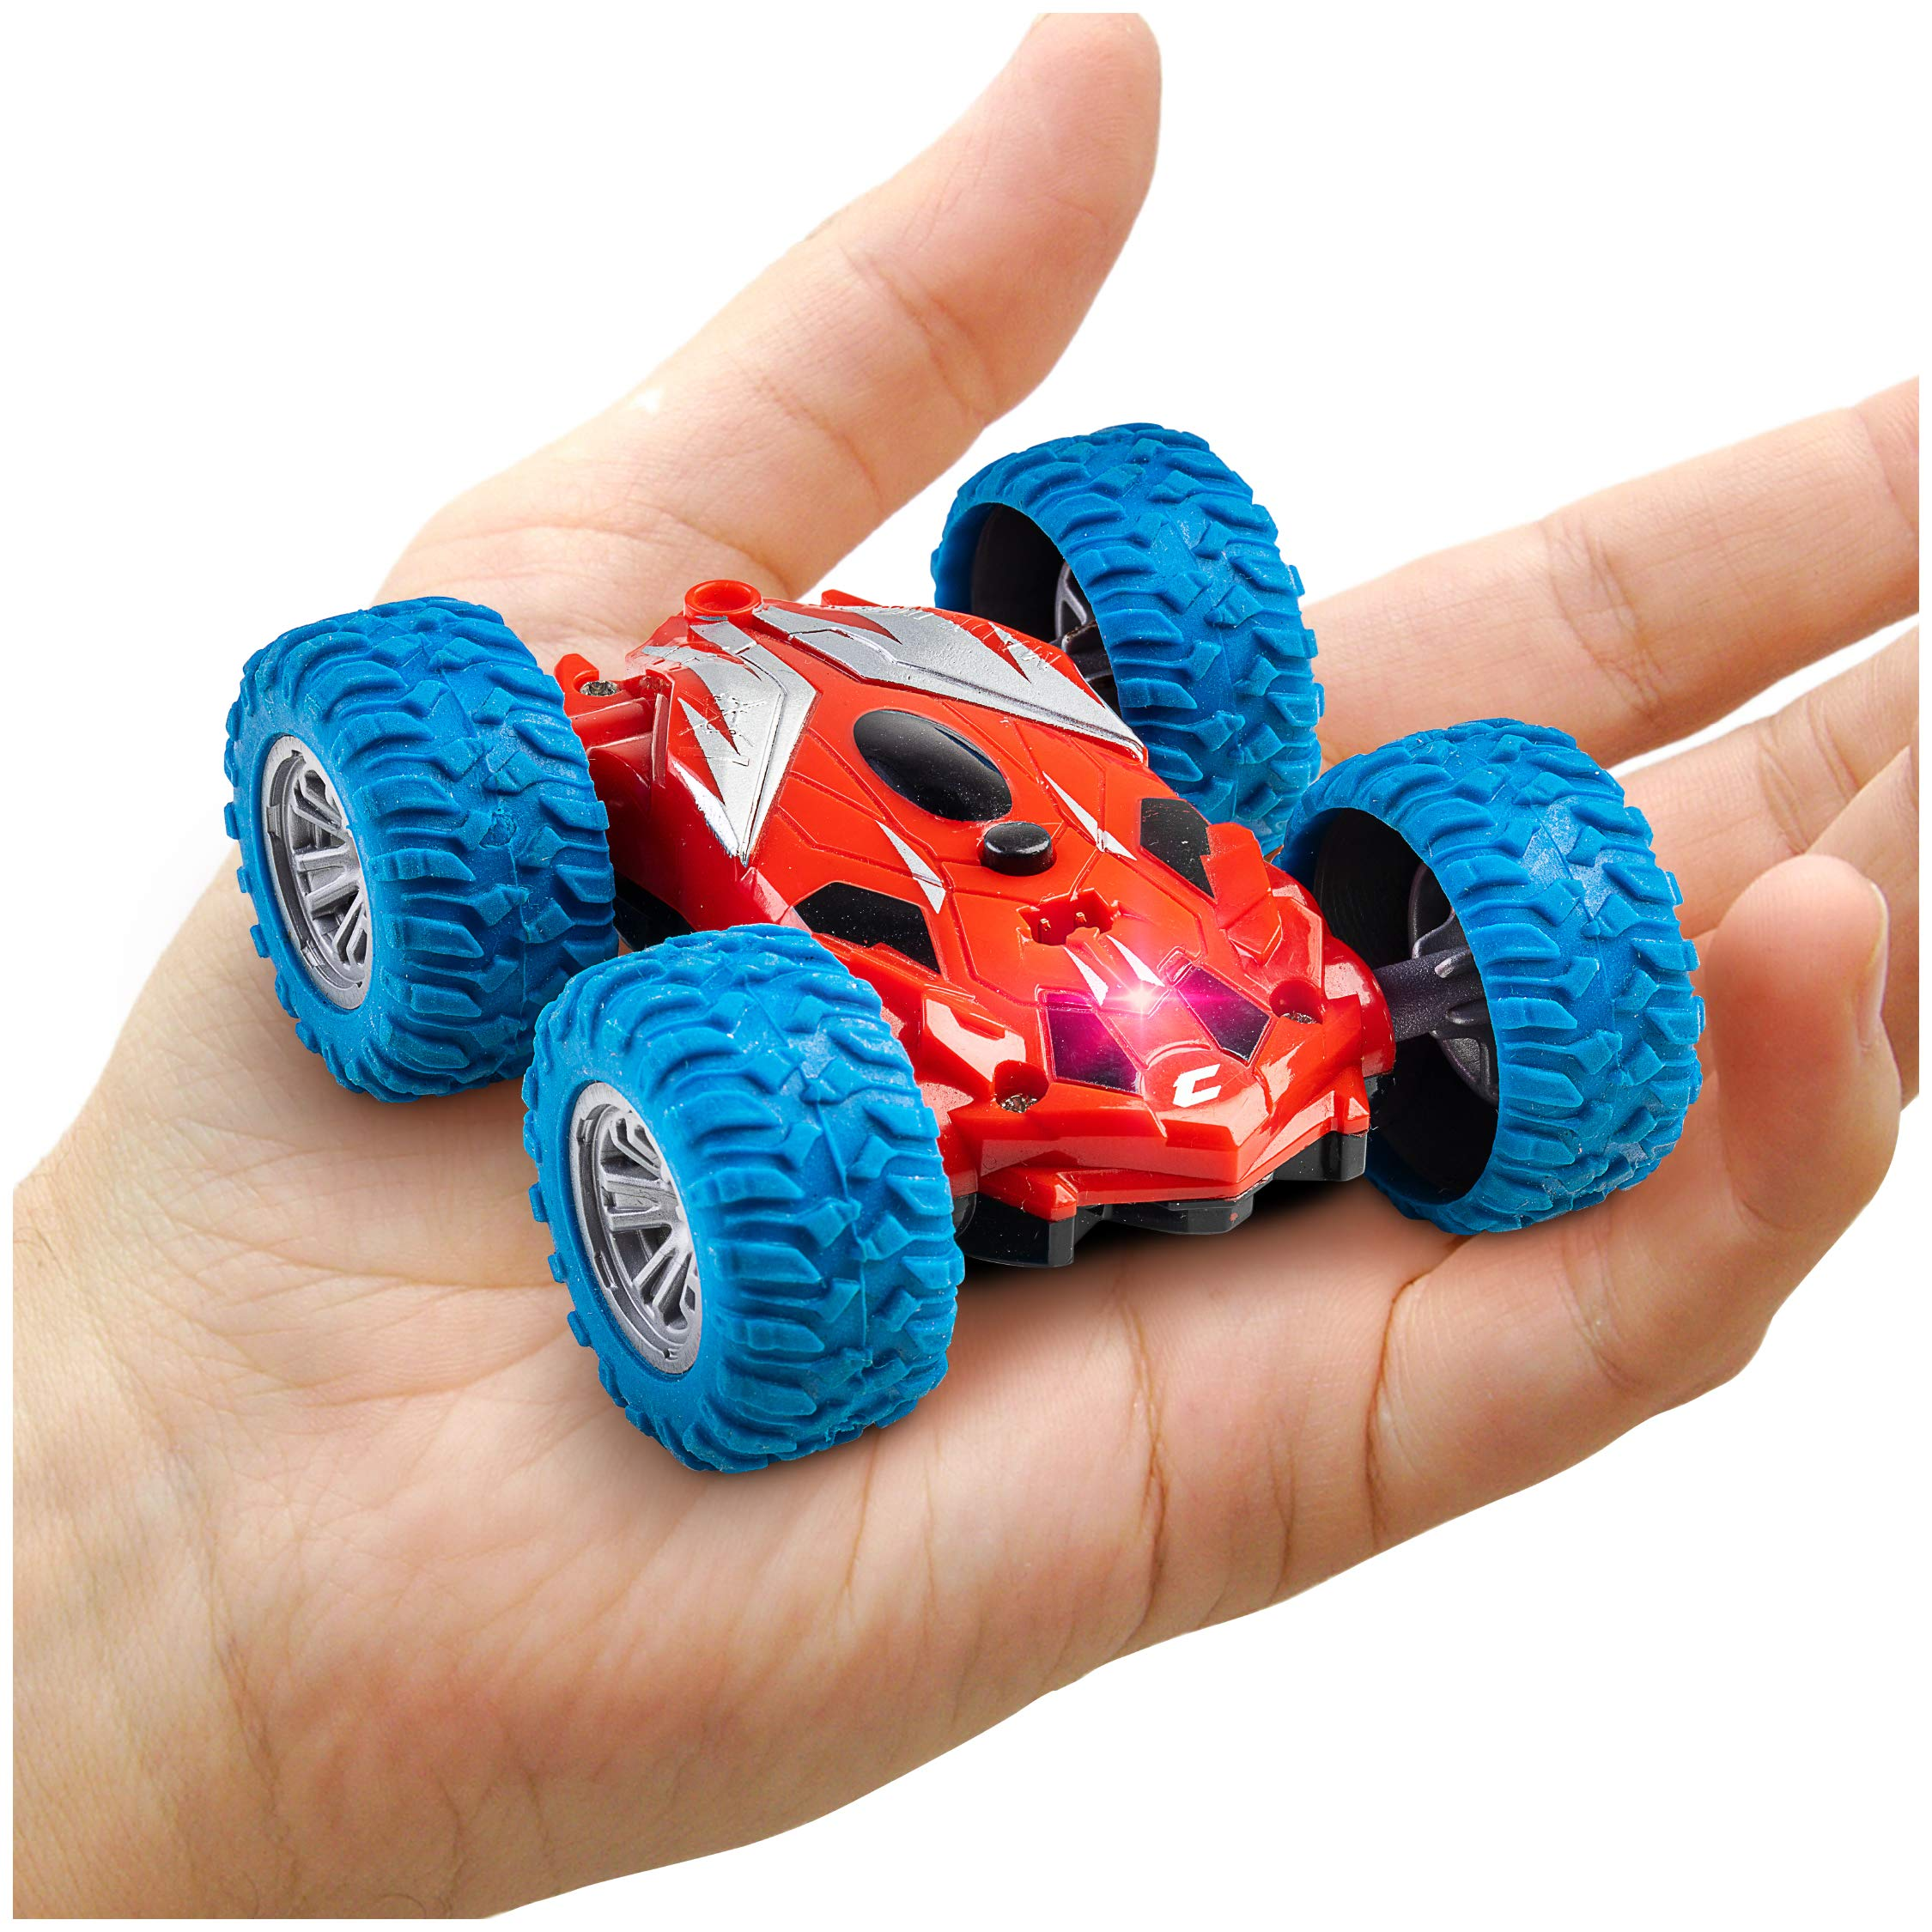 Cyclone Mini Remote Control Car For Kids Double Sided Fast Off Road Stunt Mini Rc Cars For Boys And Girls Rc Flip Car Amazon Com Au Toys Games